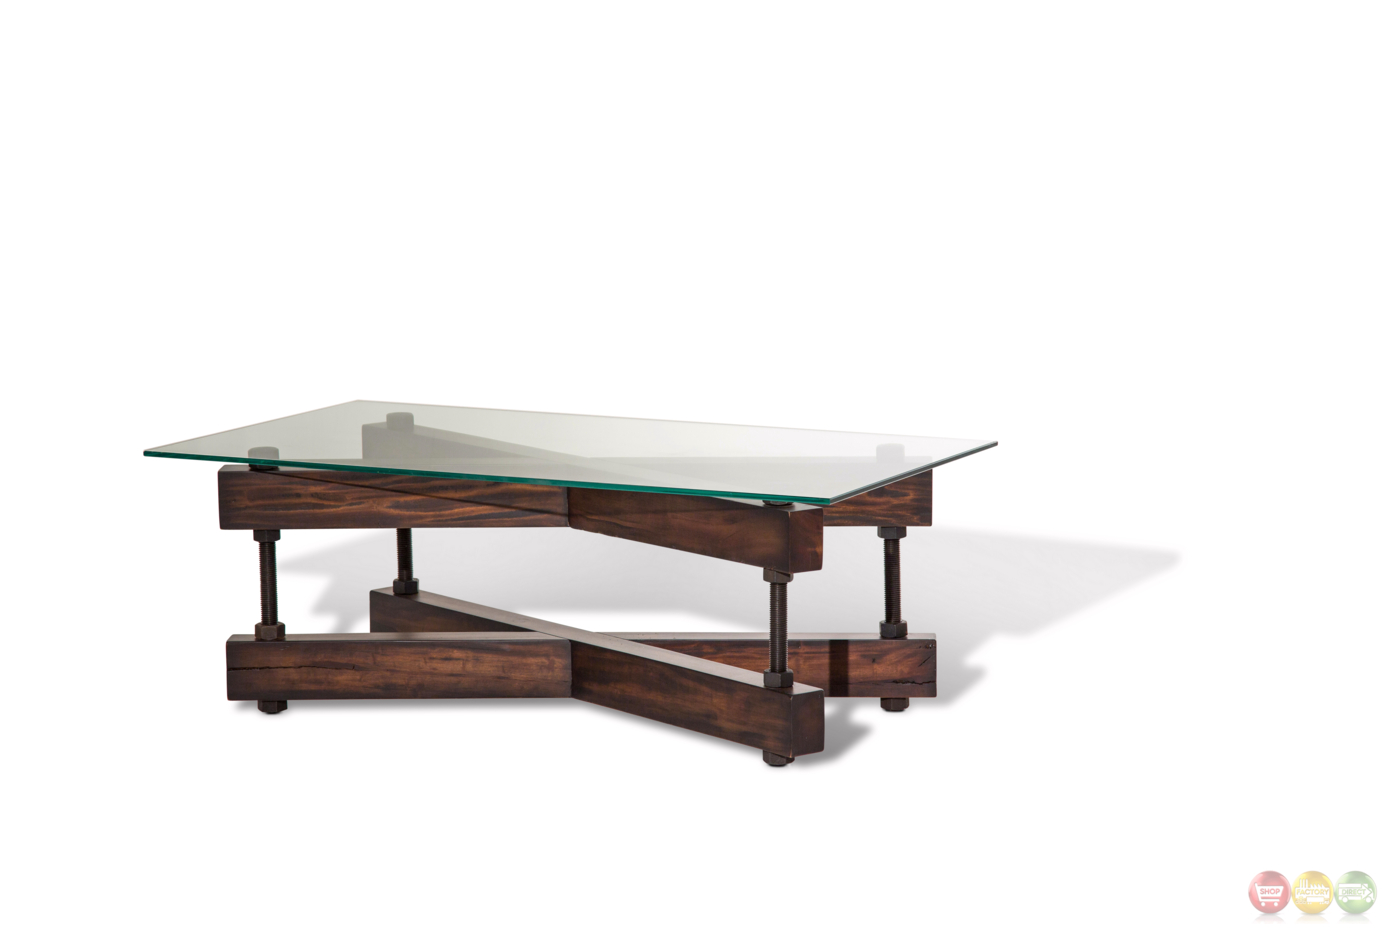 Rustic Wood And Glass Coffee Table Killington Rustic Modern Coffee Table W Glass Top